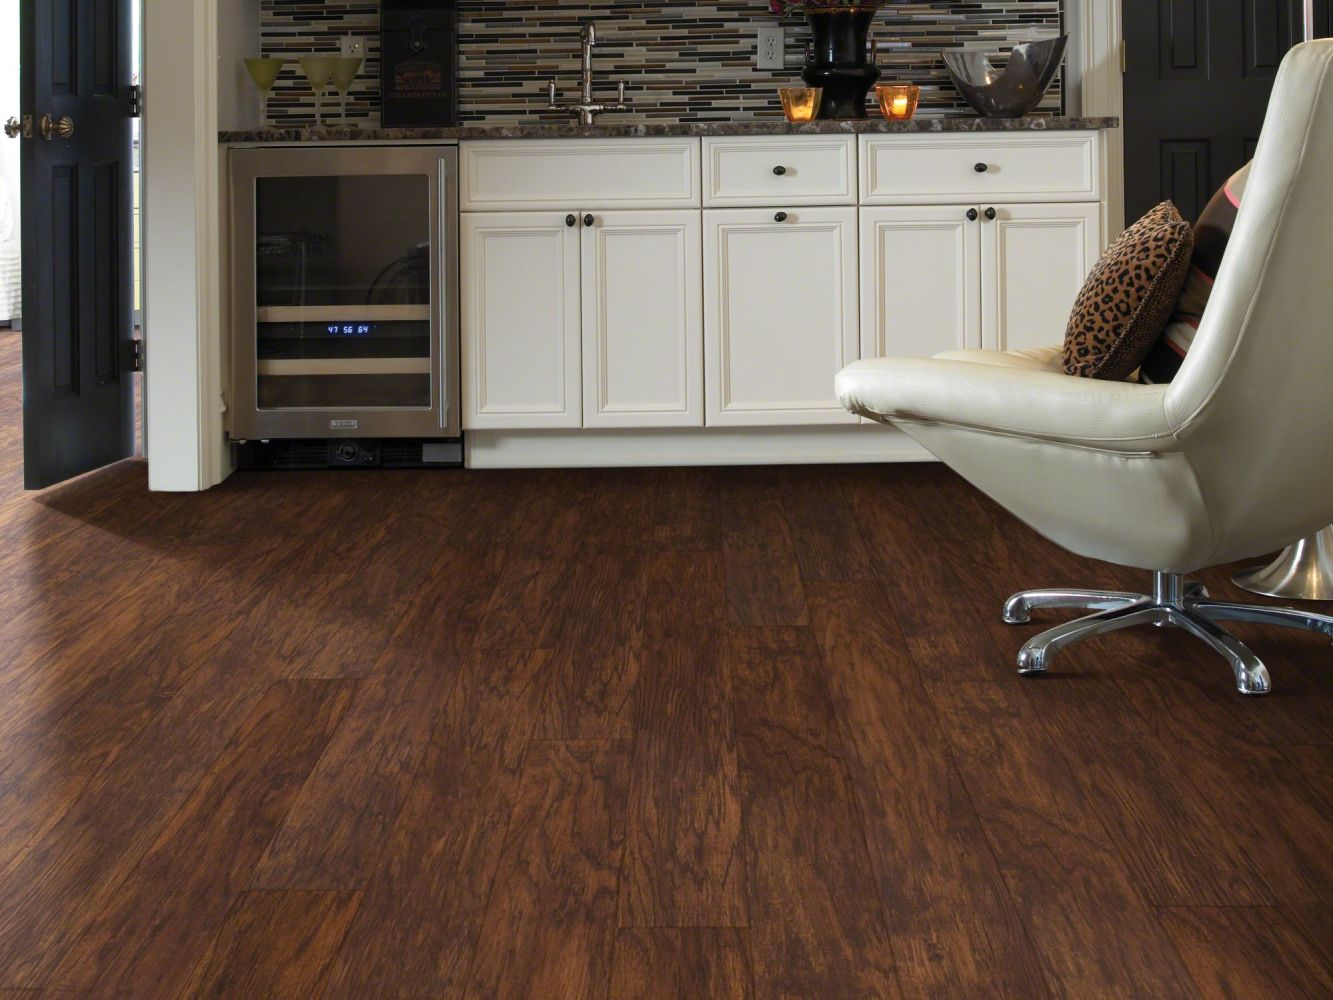 Shaw Floors Resilient Property Solutions Brava Rosso 00710_VE145